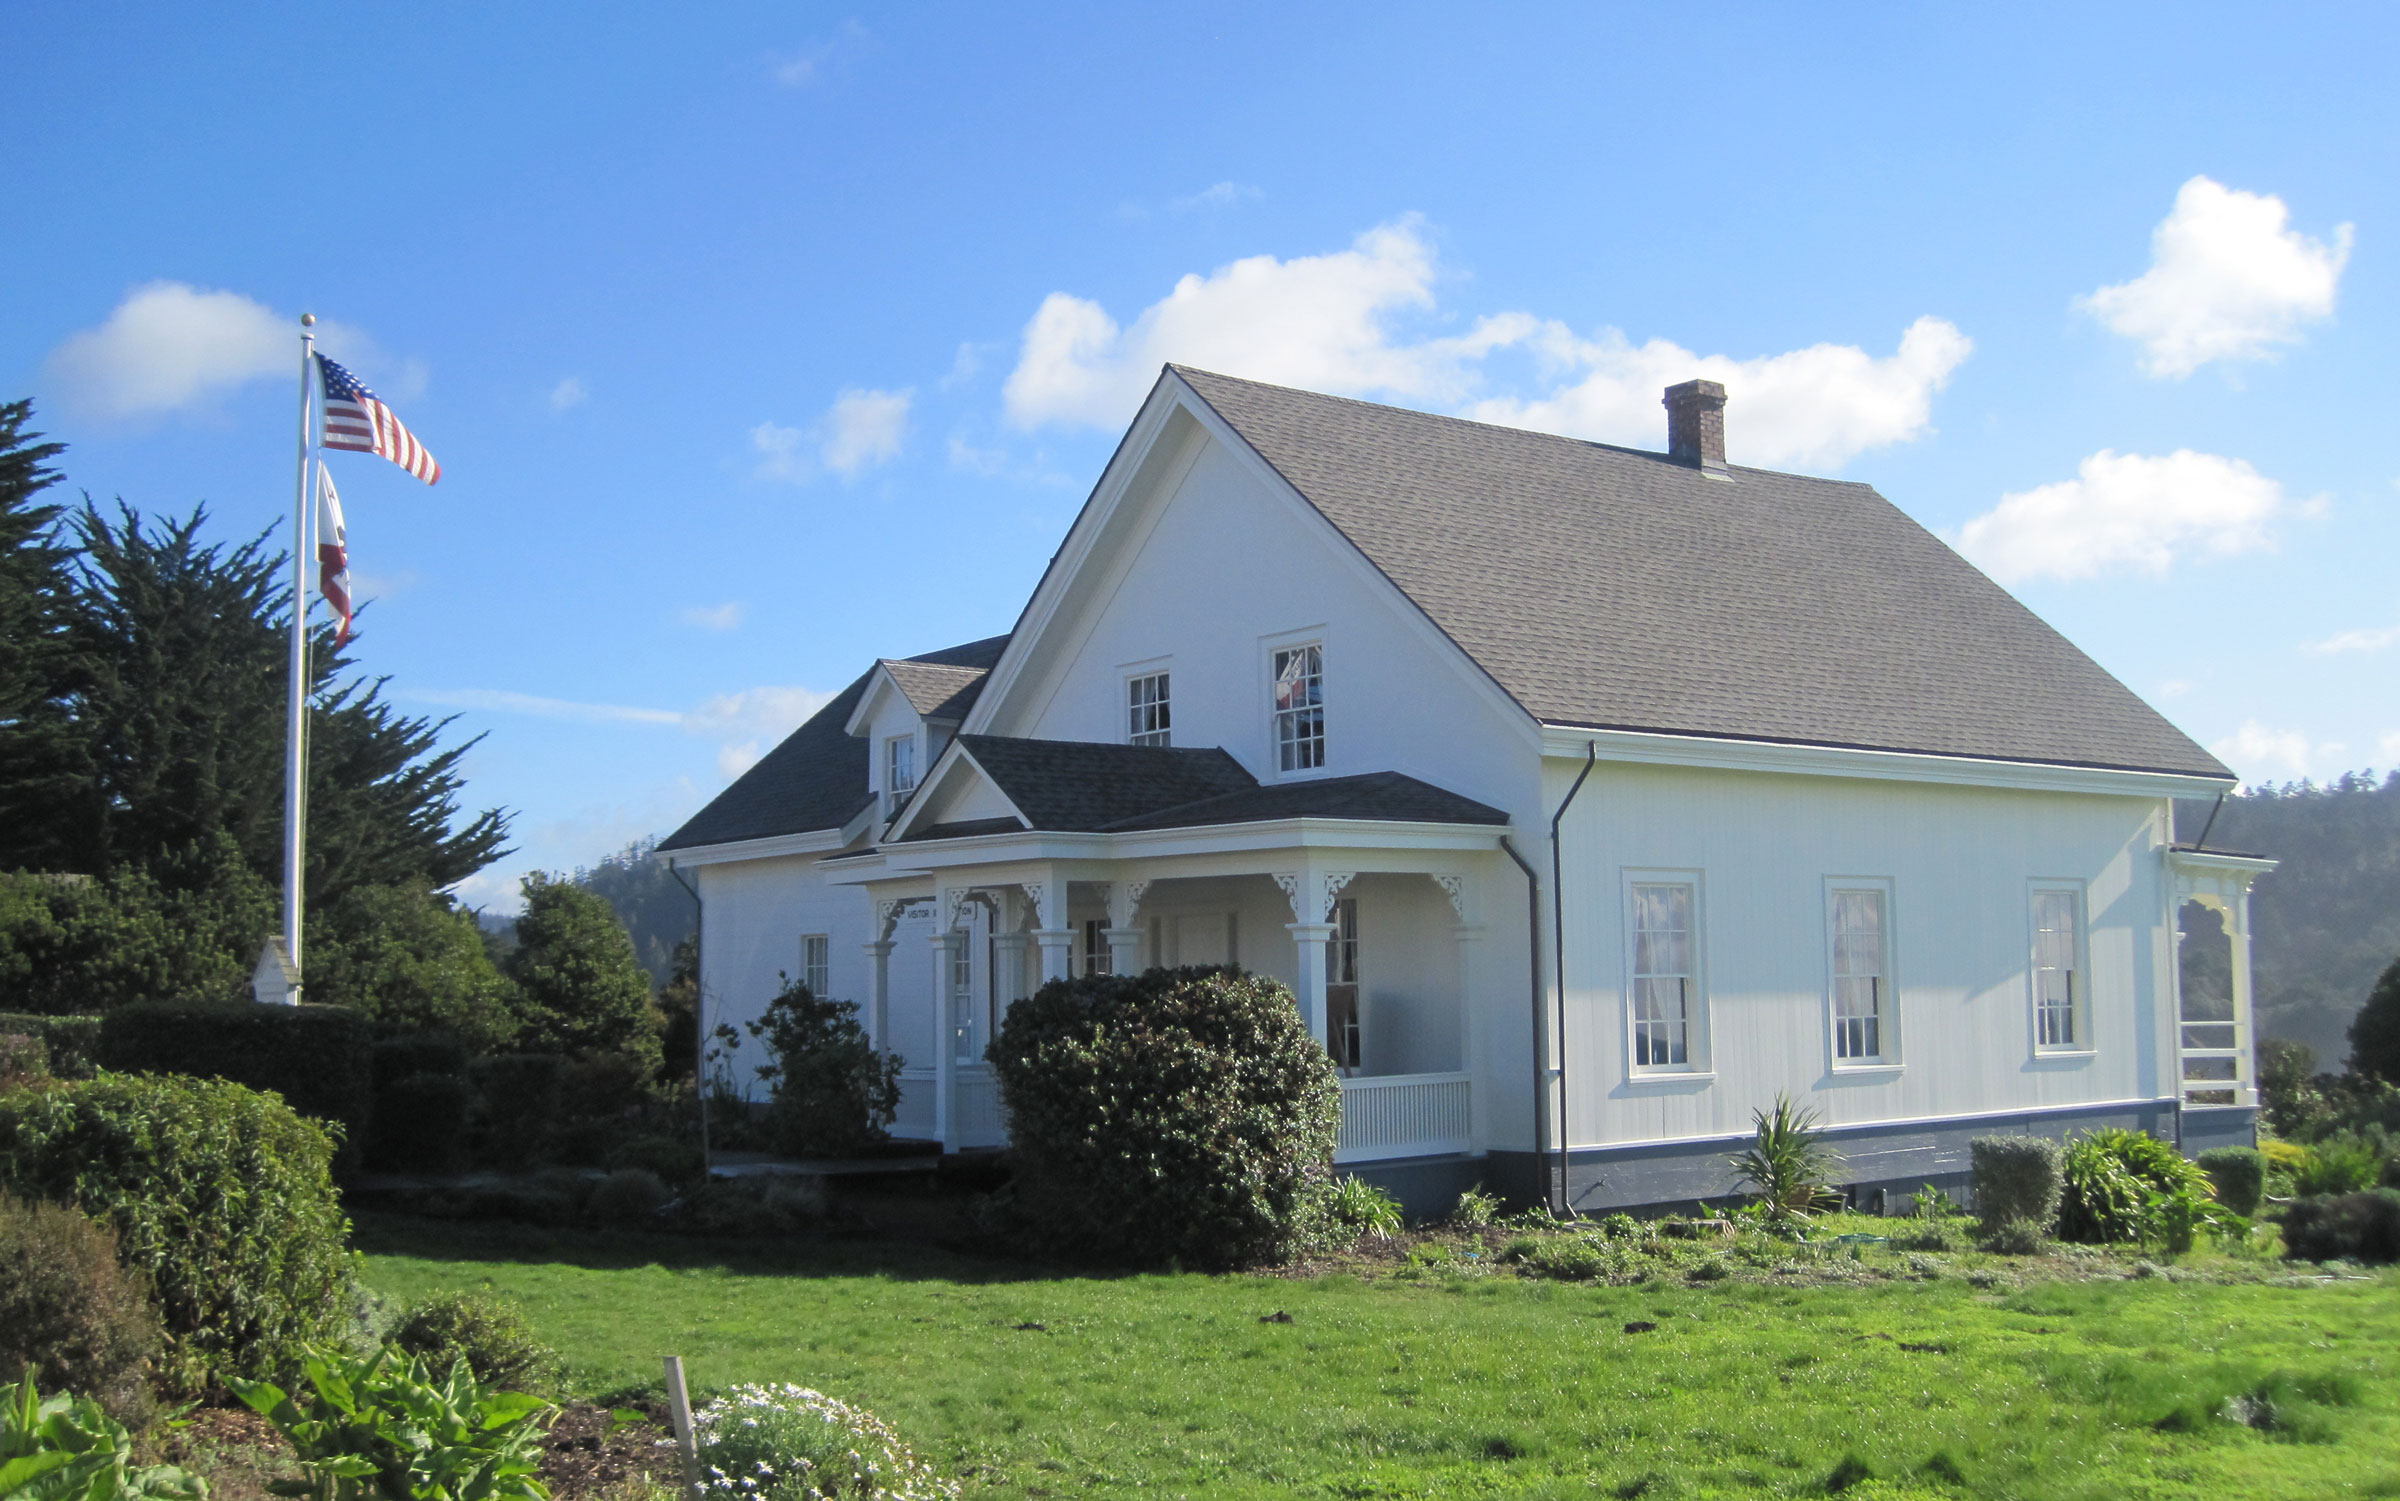 The Ford House in Mendocino shares historical and visitor information for Mendocino Village